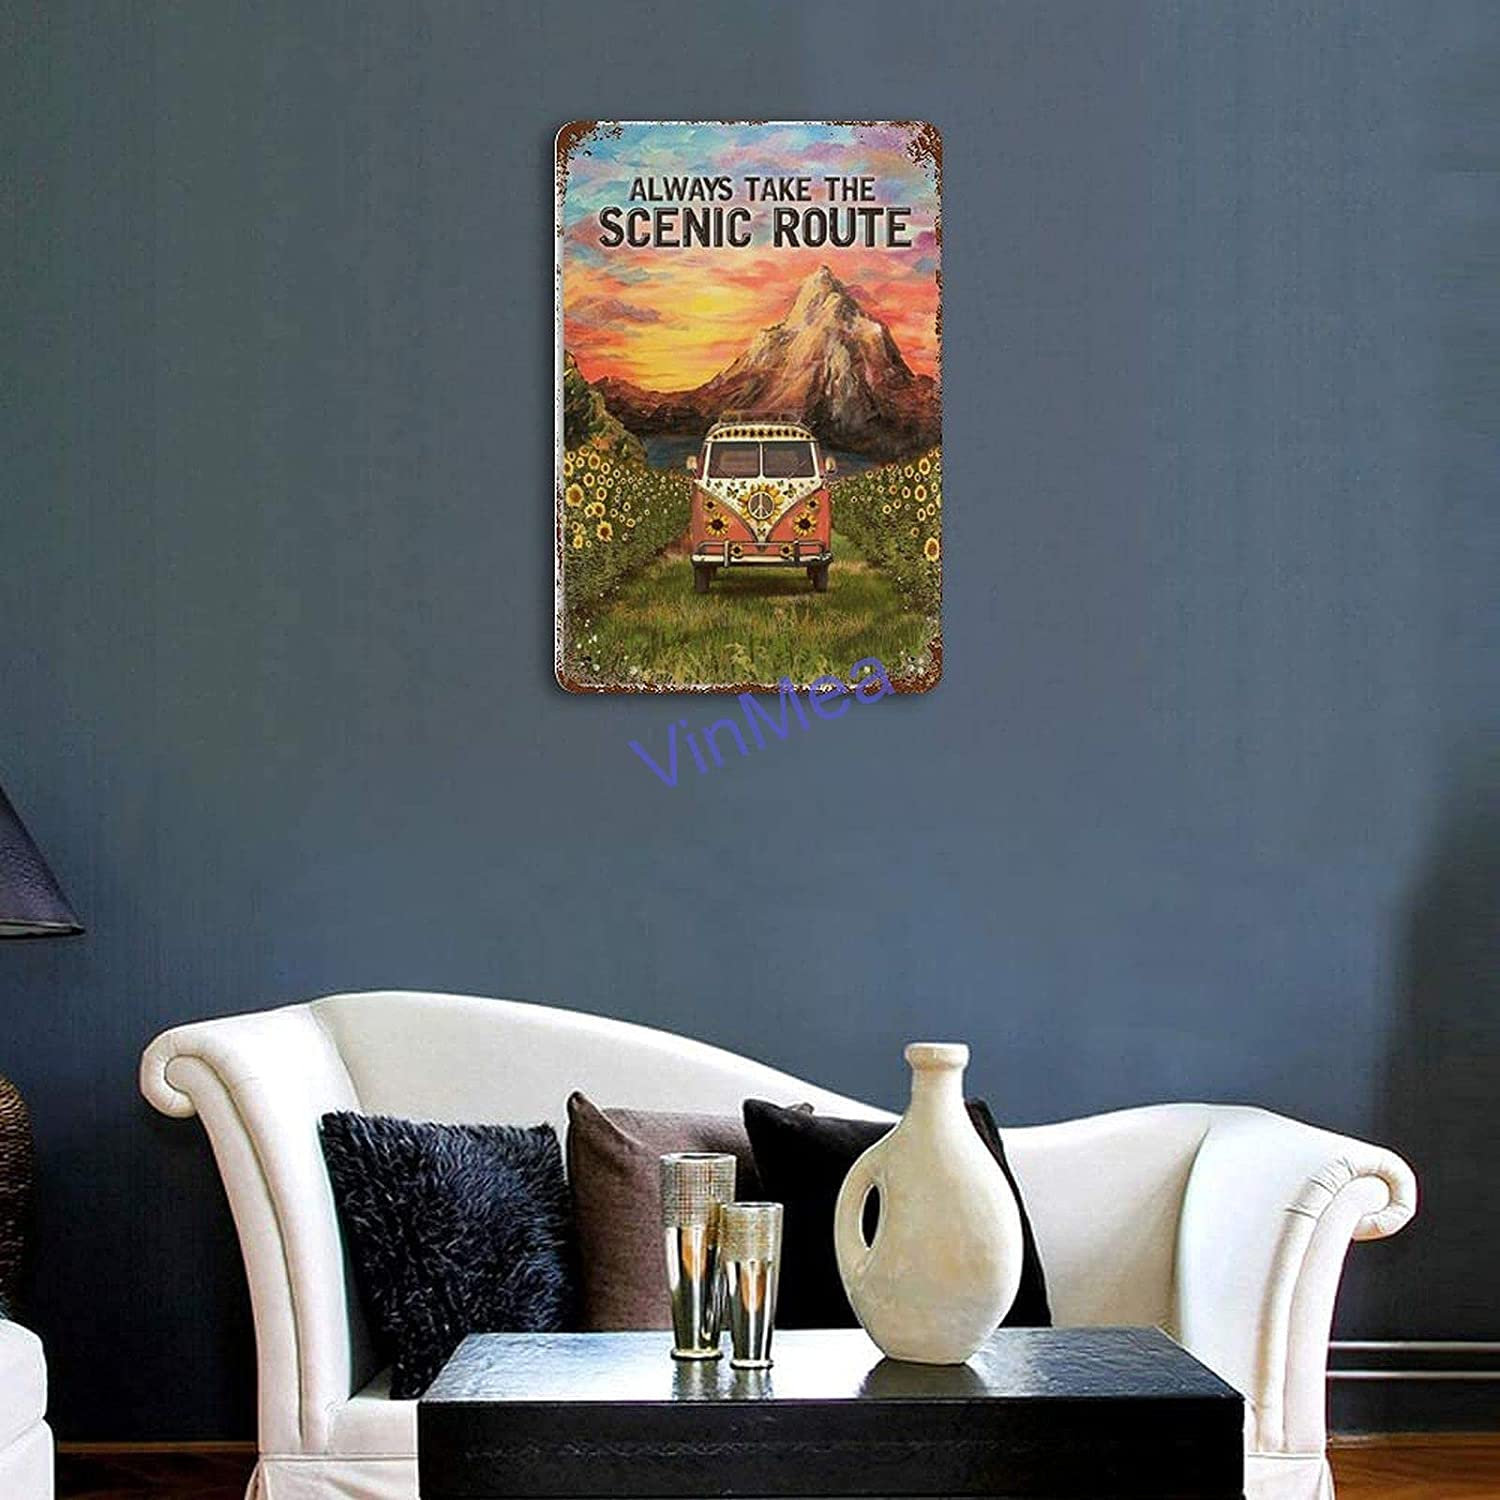 Retro Tin Wall Sign The Art Iron Painting - Camping Mountain and Truck Always Take The Scenic Route Decoration Poster Wall Decor Gifts for Office Home Cafe Shop Bar 8 X 12 Inches